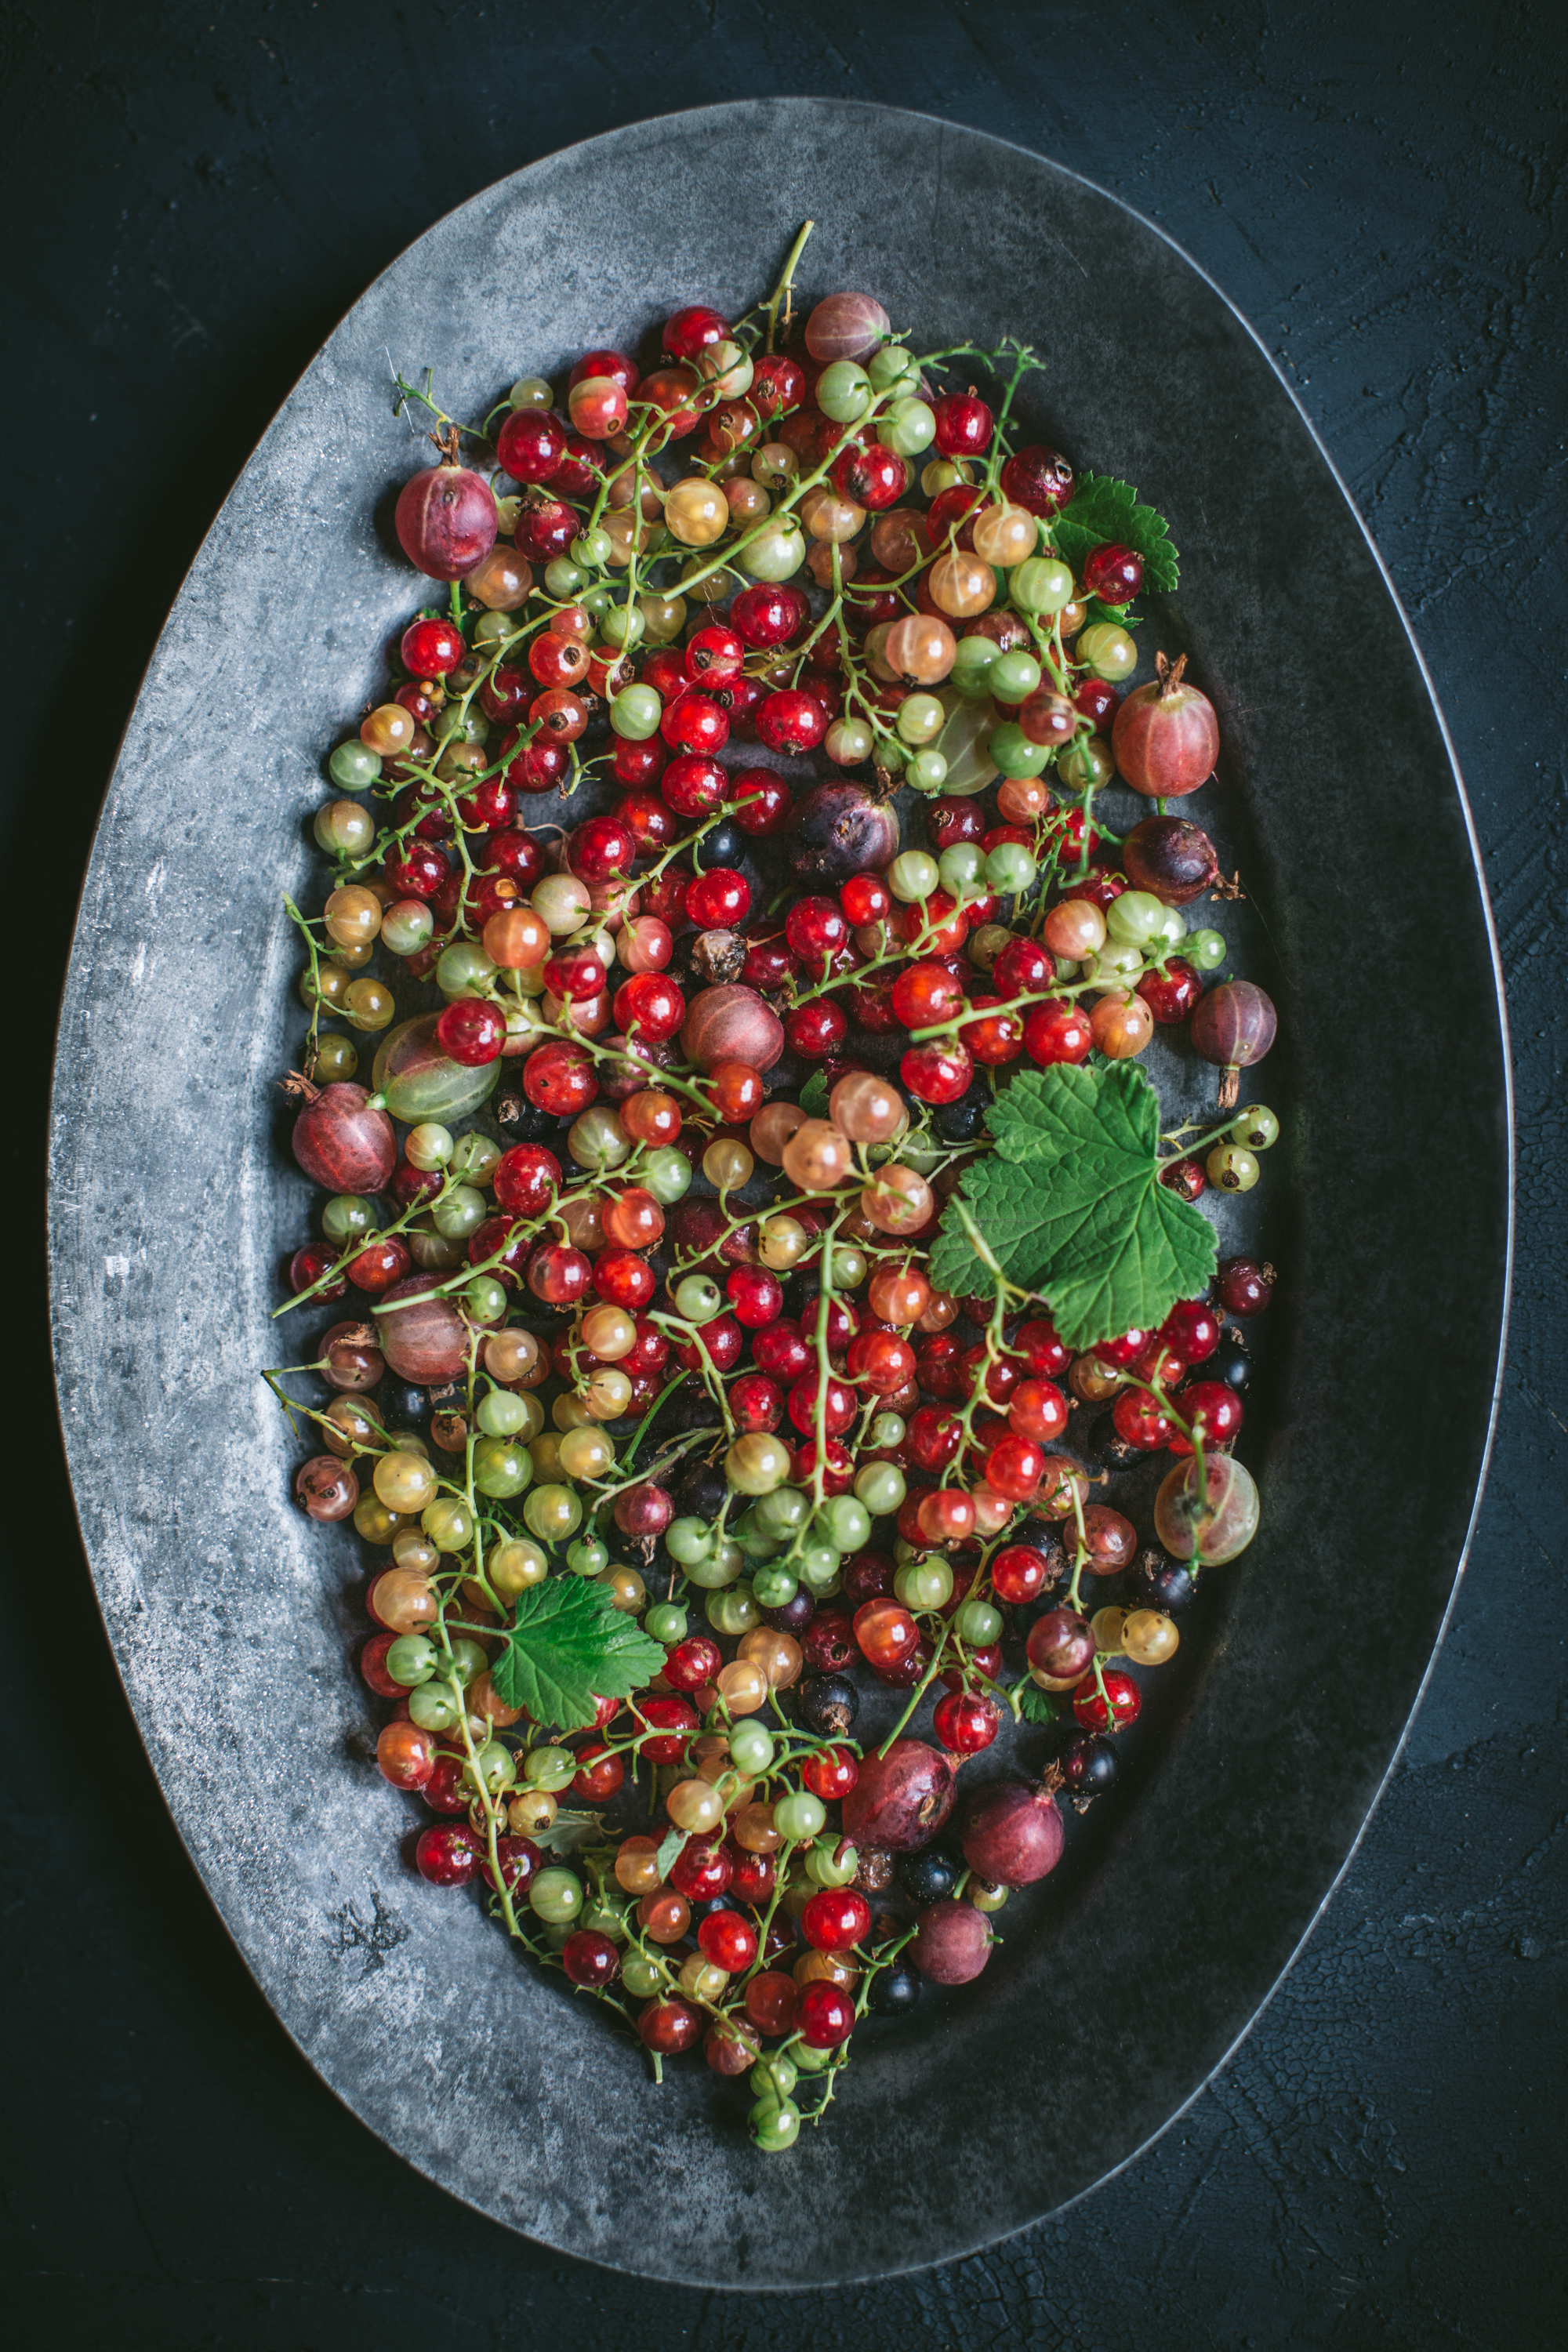 Currants by Eva Kosmas Flores